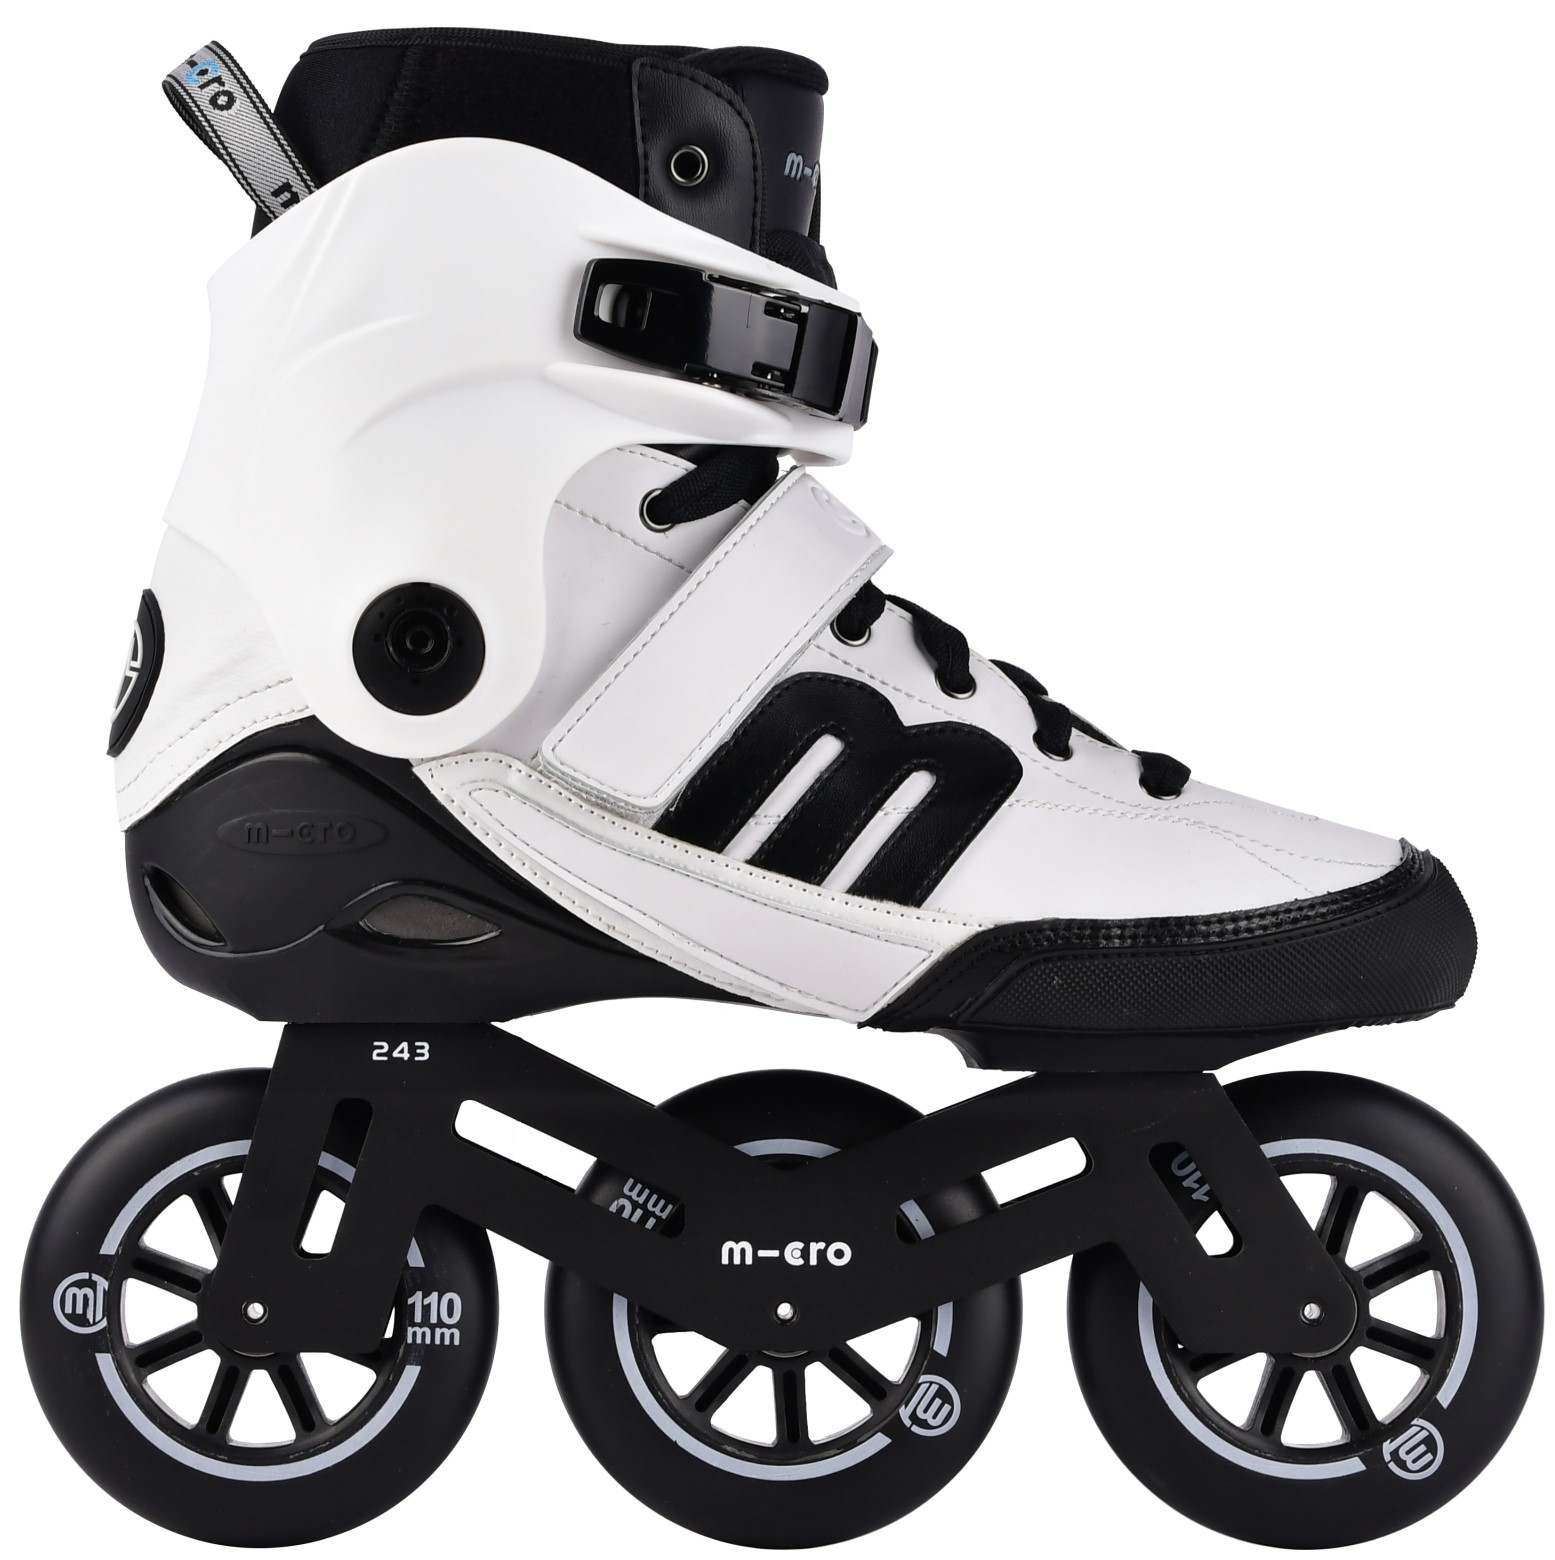 Micro white BEAT inline skate for urban use in side view